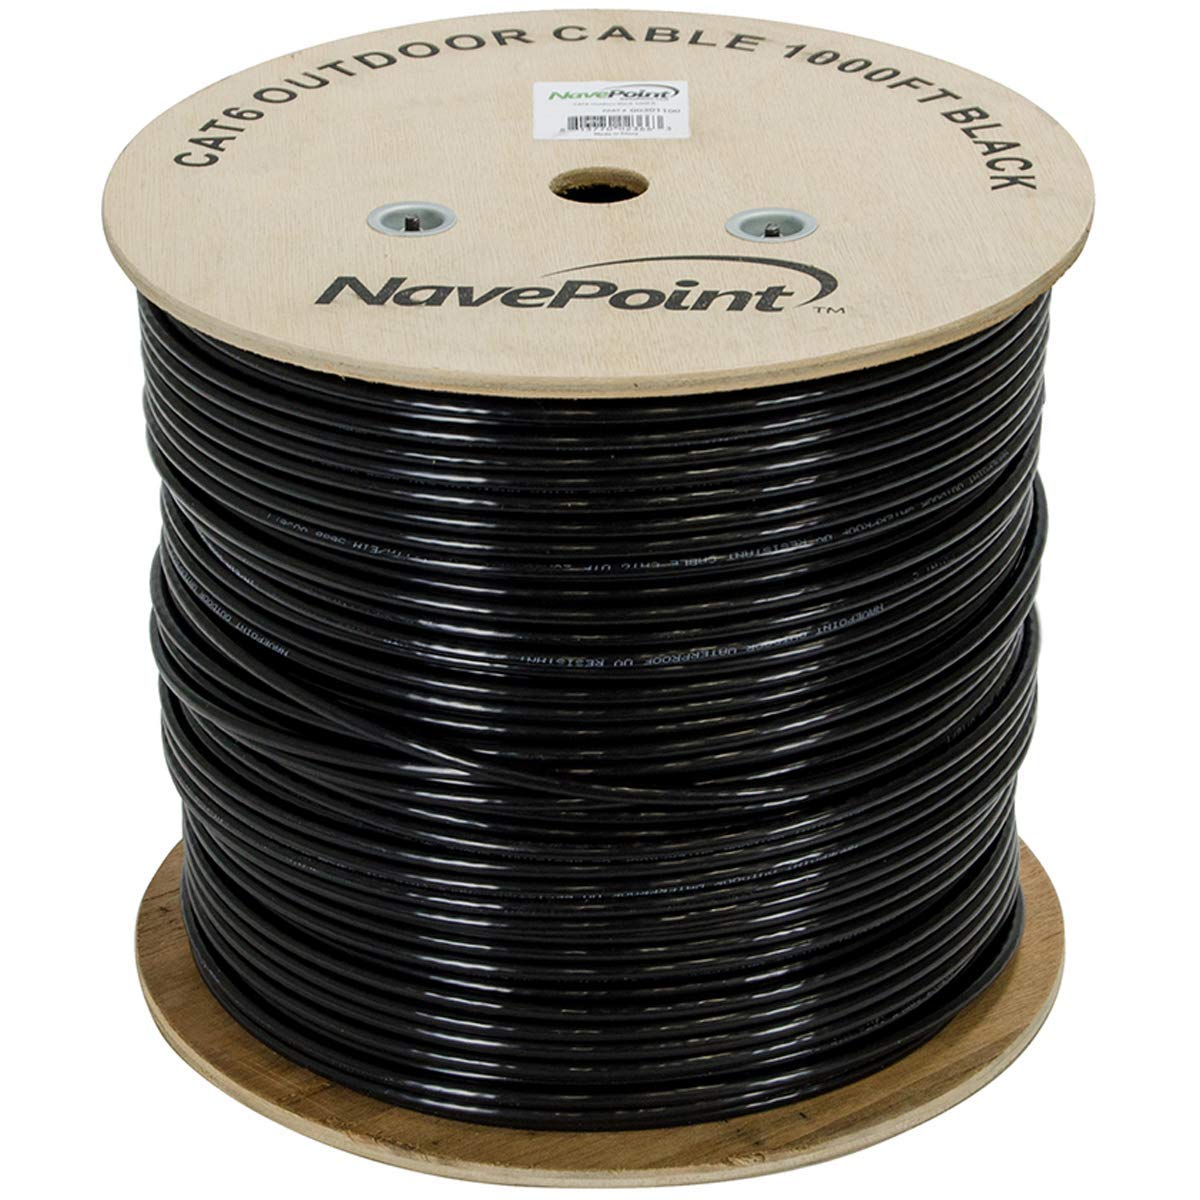 NavePoint CAT6 Outdoor Direct Burial Rated, 1000ft, Solid Conductor, Black, Bulk Ethernet Cable, 23AWG 4 Pair, Unshielded Twisted Pair (UTP)